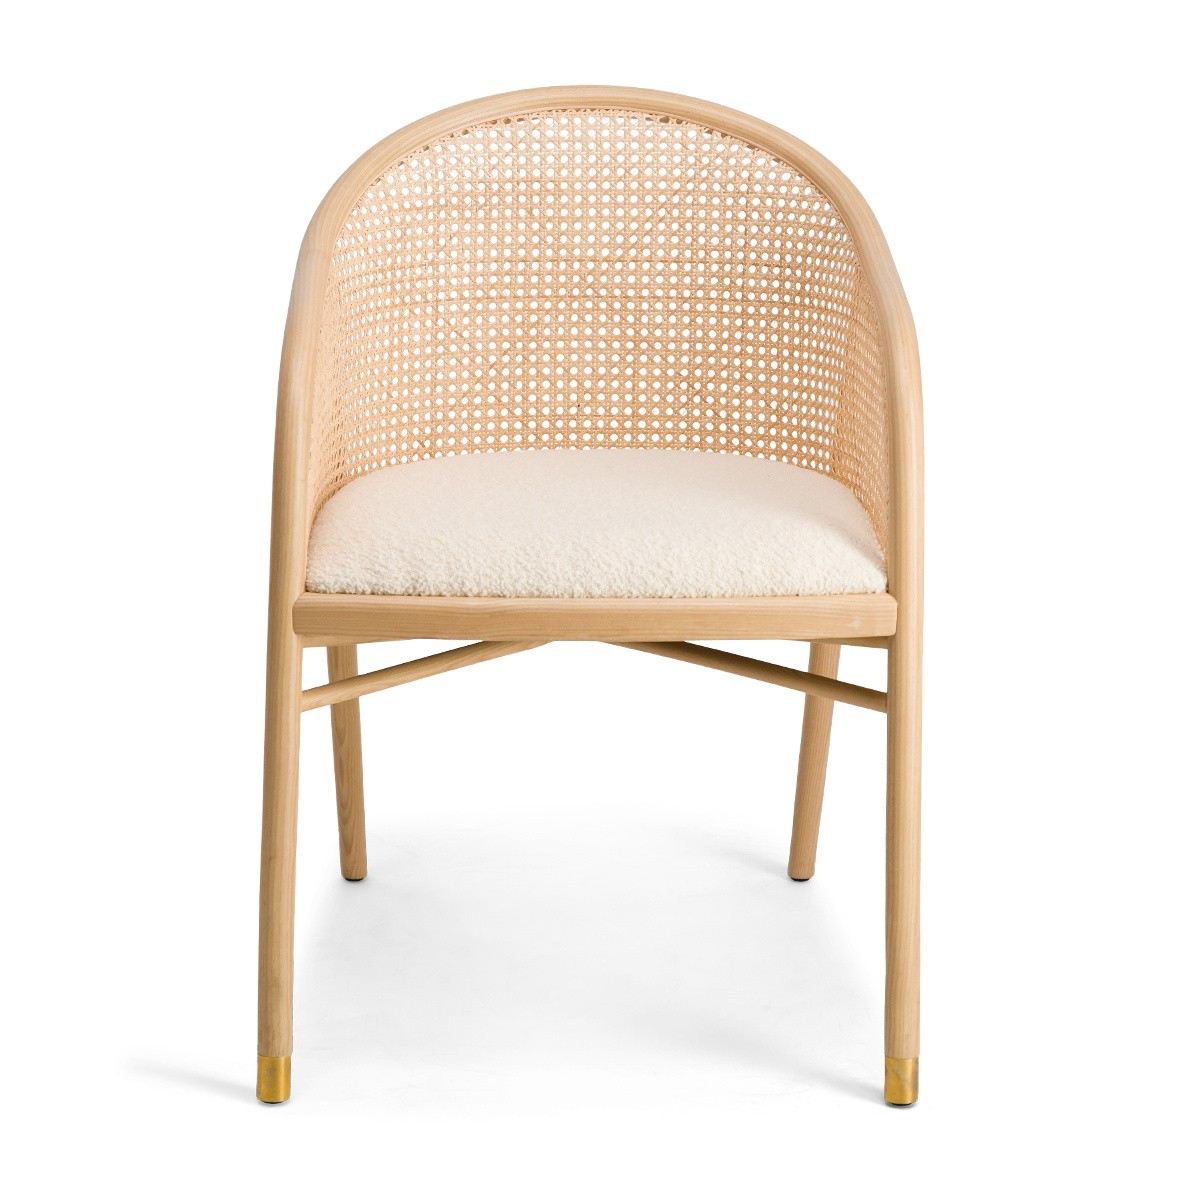 Cavallo Armchair, Cream White Curly Wool with Natrual Lacquered Frame